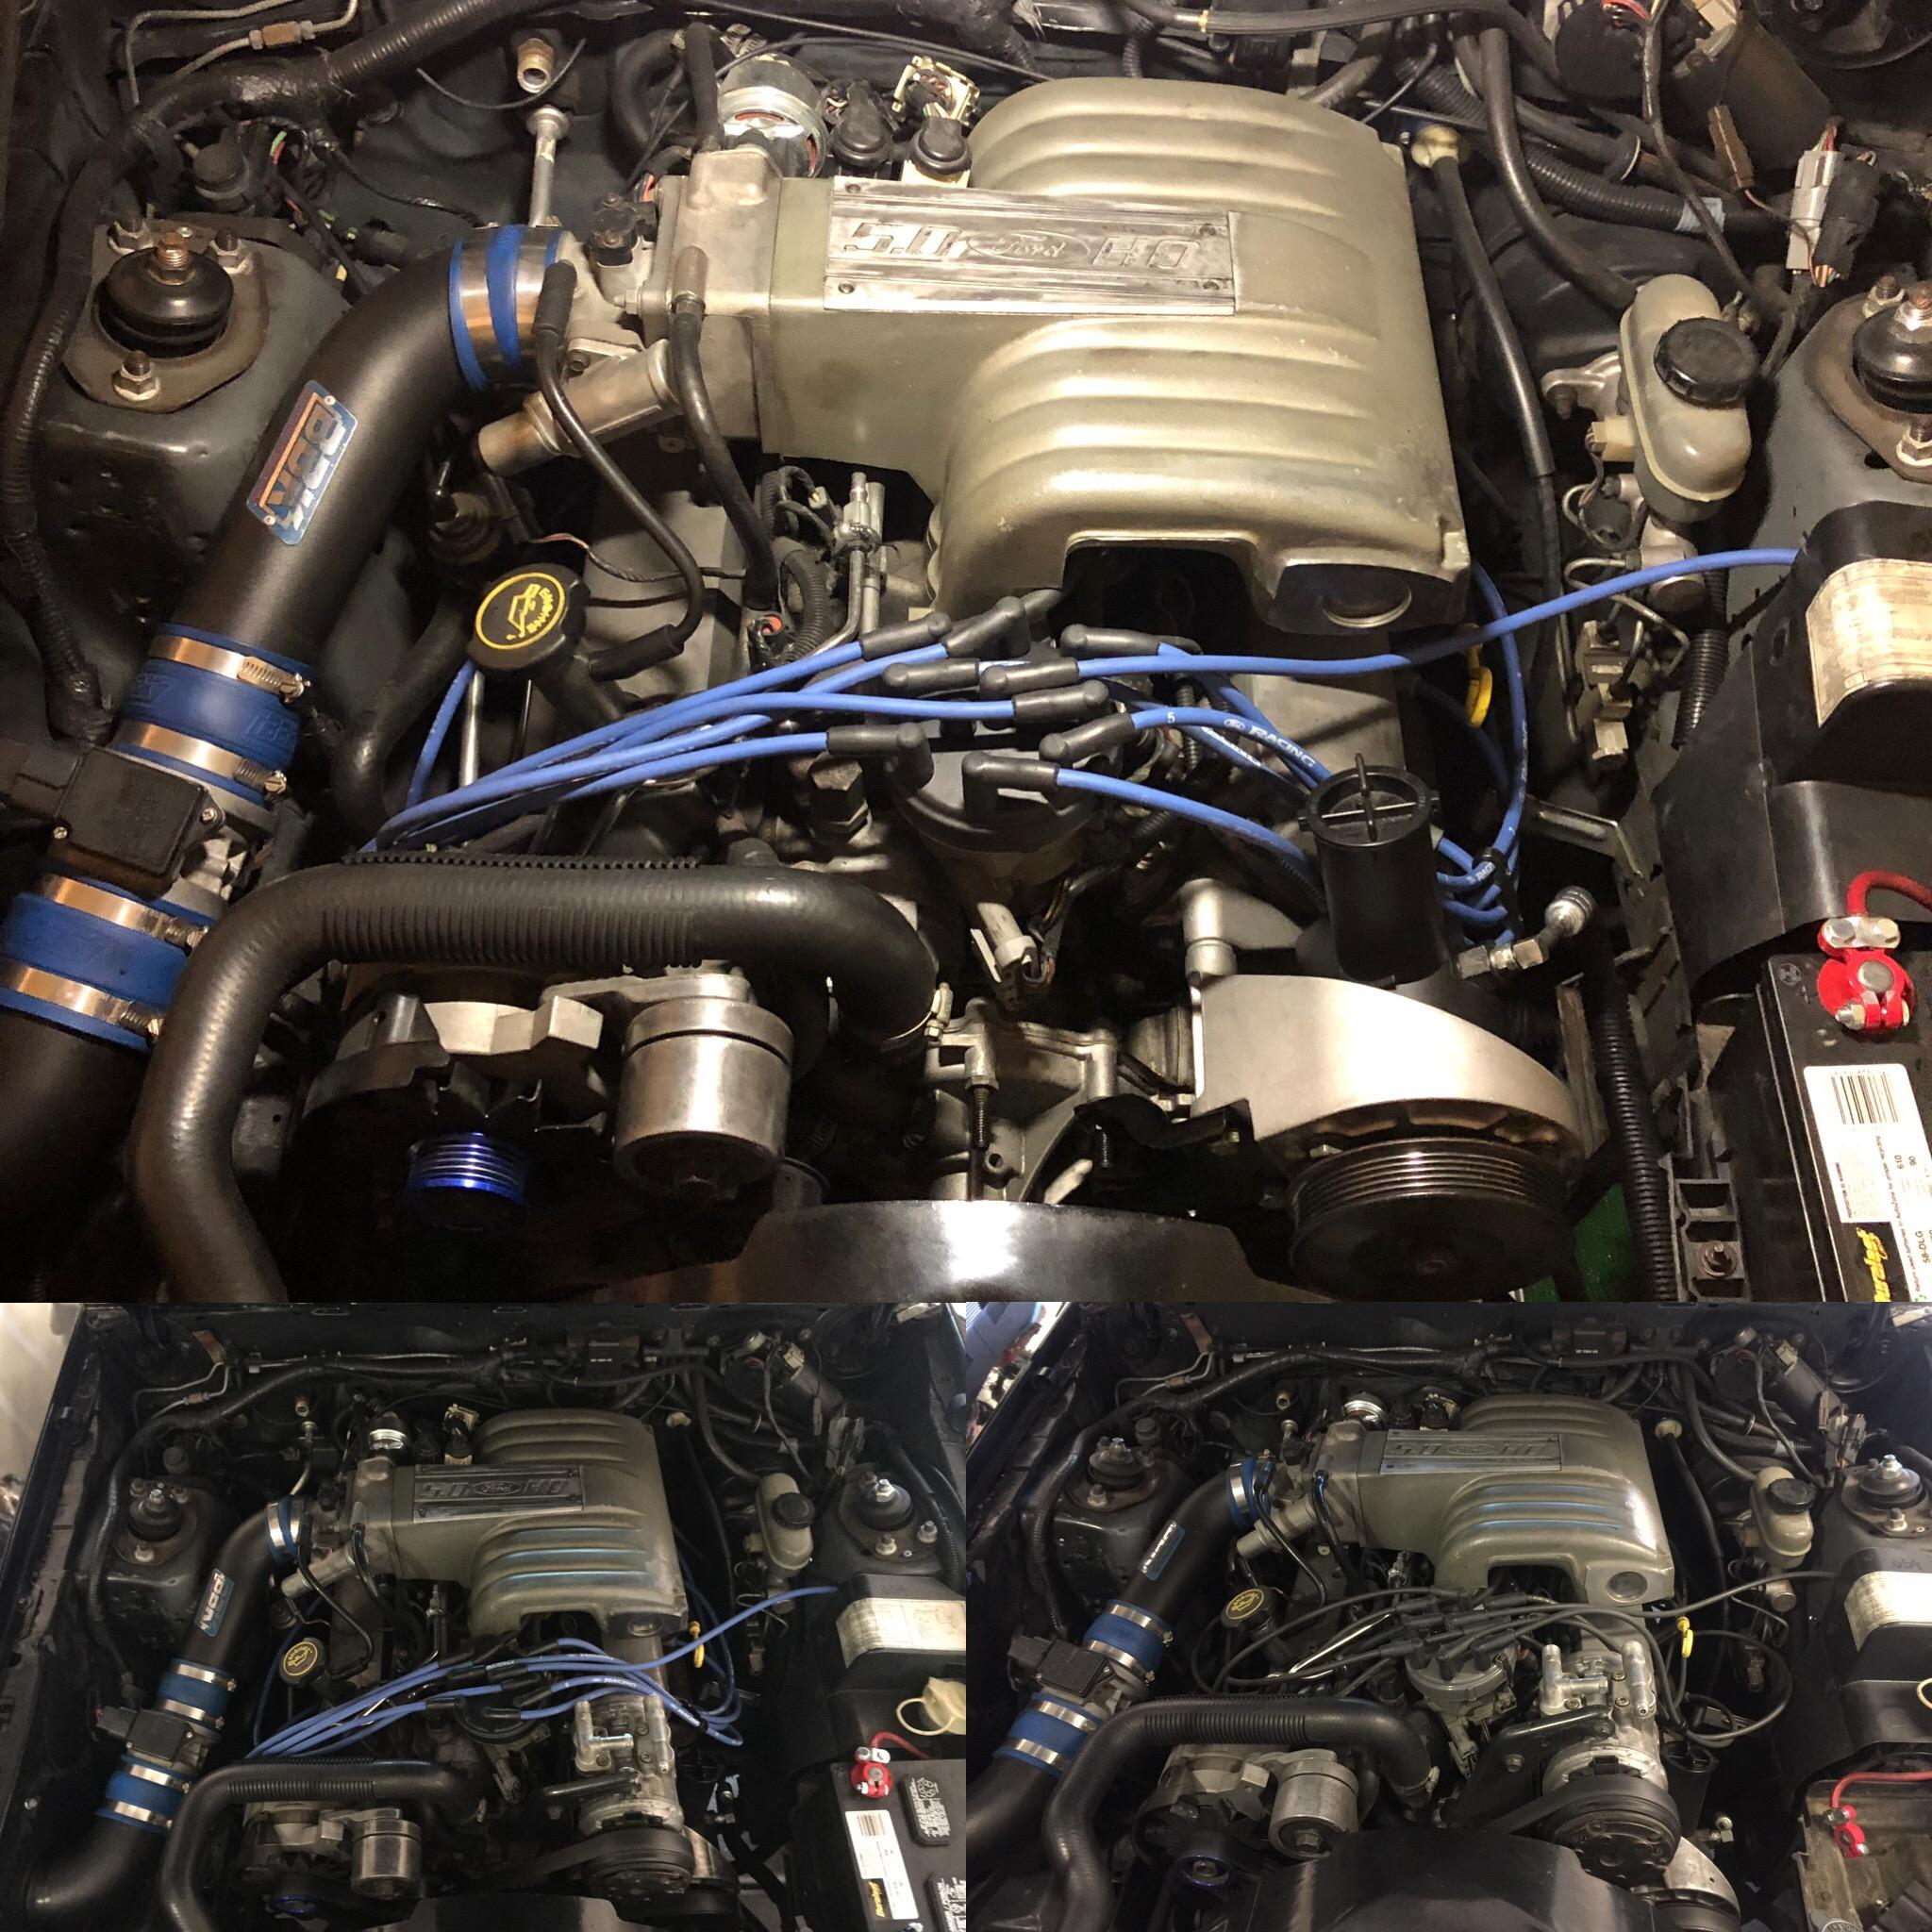 Mustang Power Steering Bracket 85 93 50 1986 5 0 Carb Wiring Harness To Buy The Too Because She Had An F150 For Some Reason Im Happy With Look And Installation Was Easy